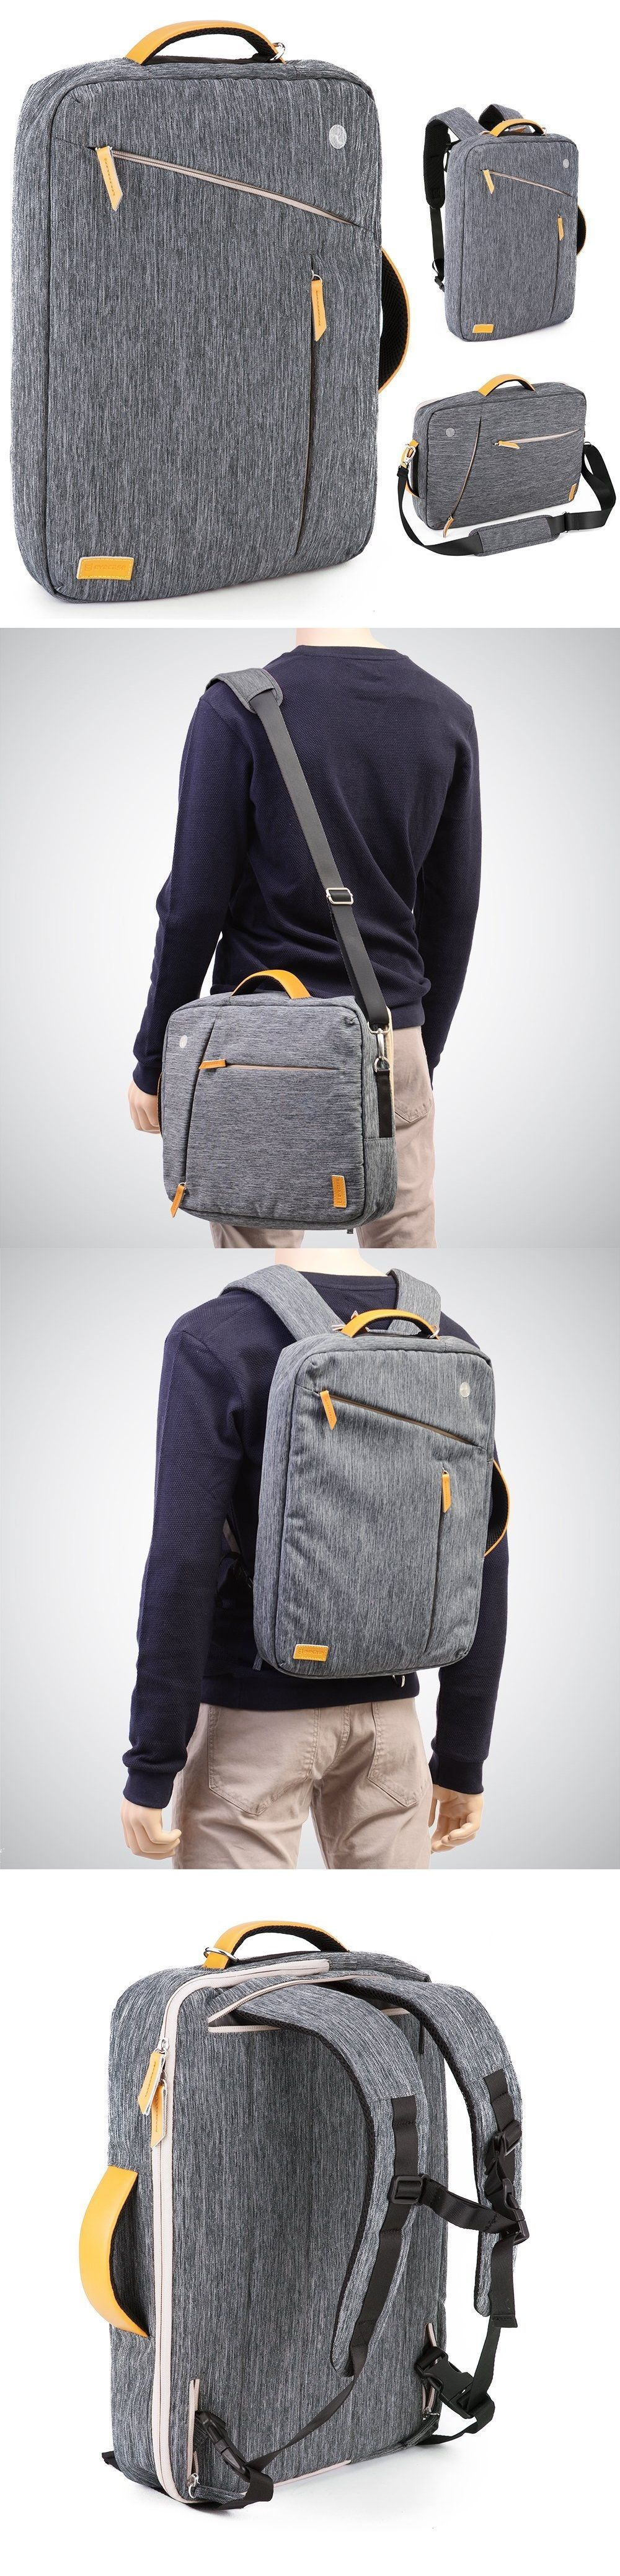 Tumblr BackPack Briefcase tumblr Backpack Canvas tumblr backpacks cute Ebags Convertible leather Laptop backpack UaY1qq